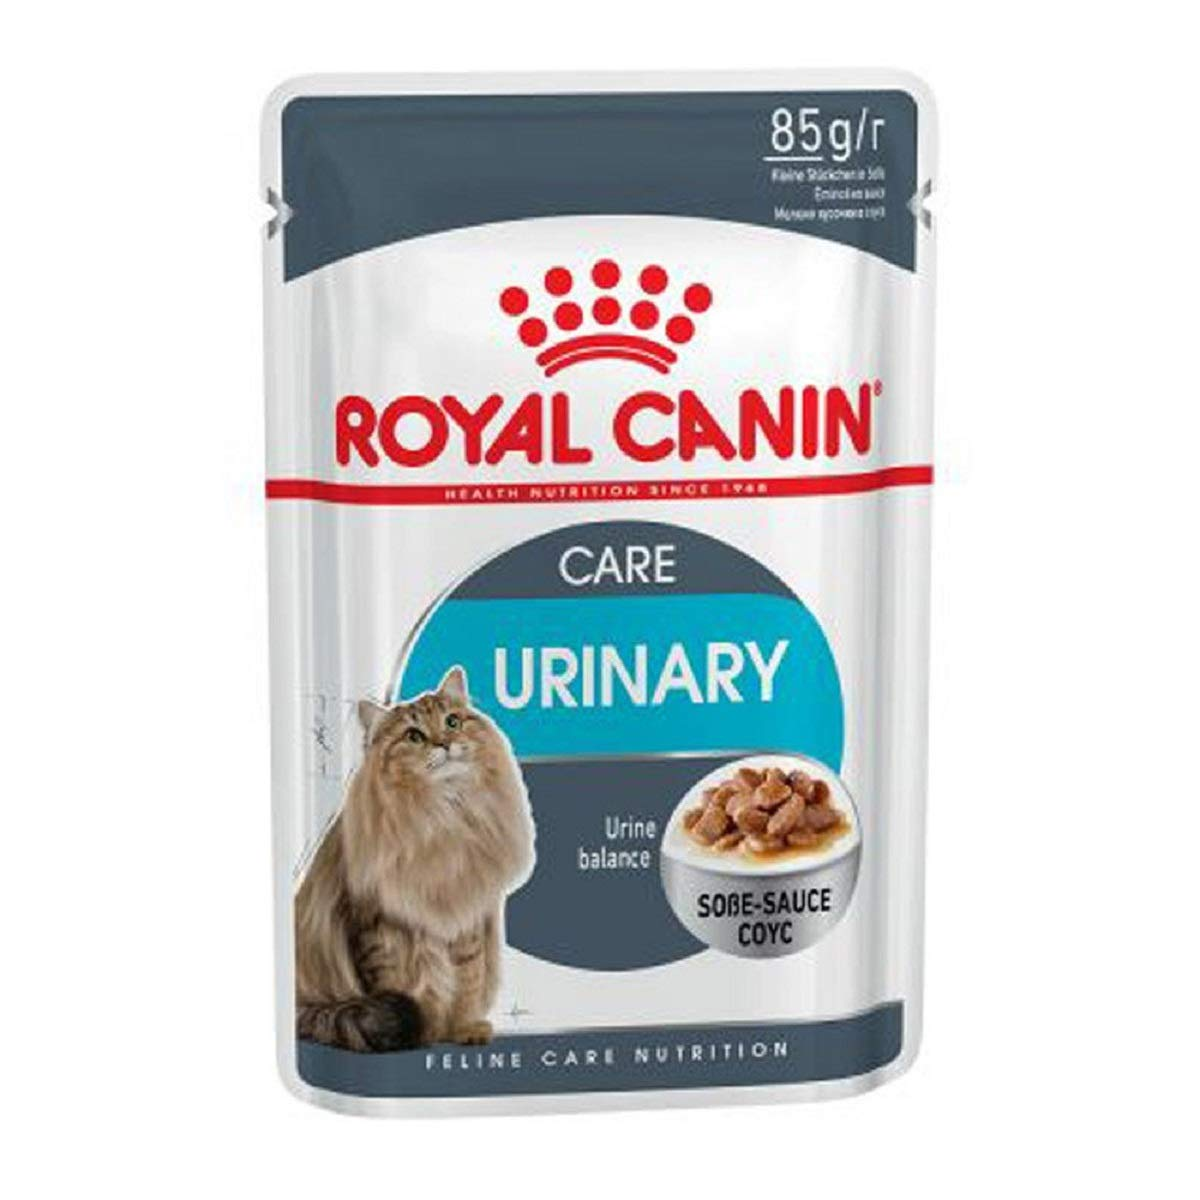 ROYAL CANIN Comida para gatos Urinary Care 10 Kg: Amazon.es: Productos para mascotas